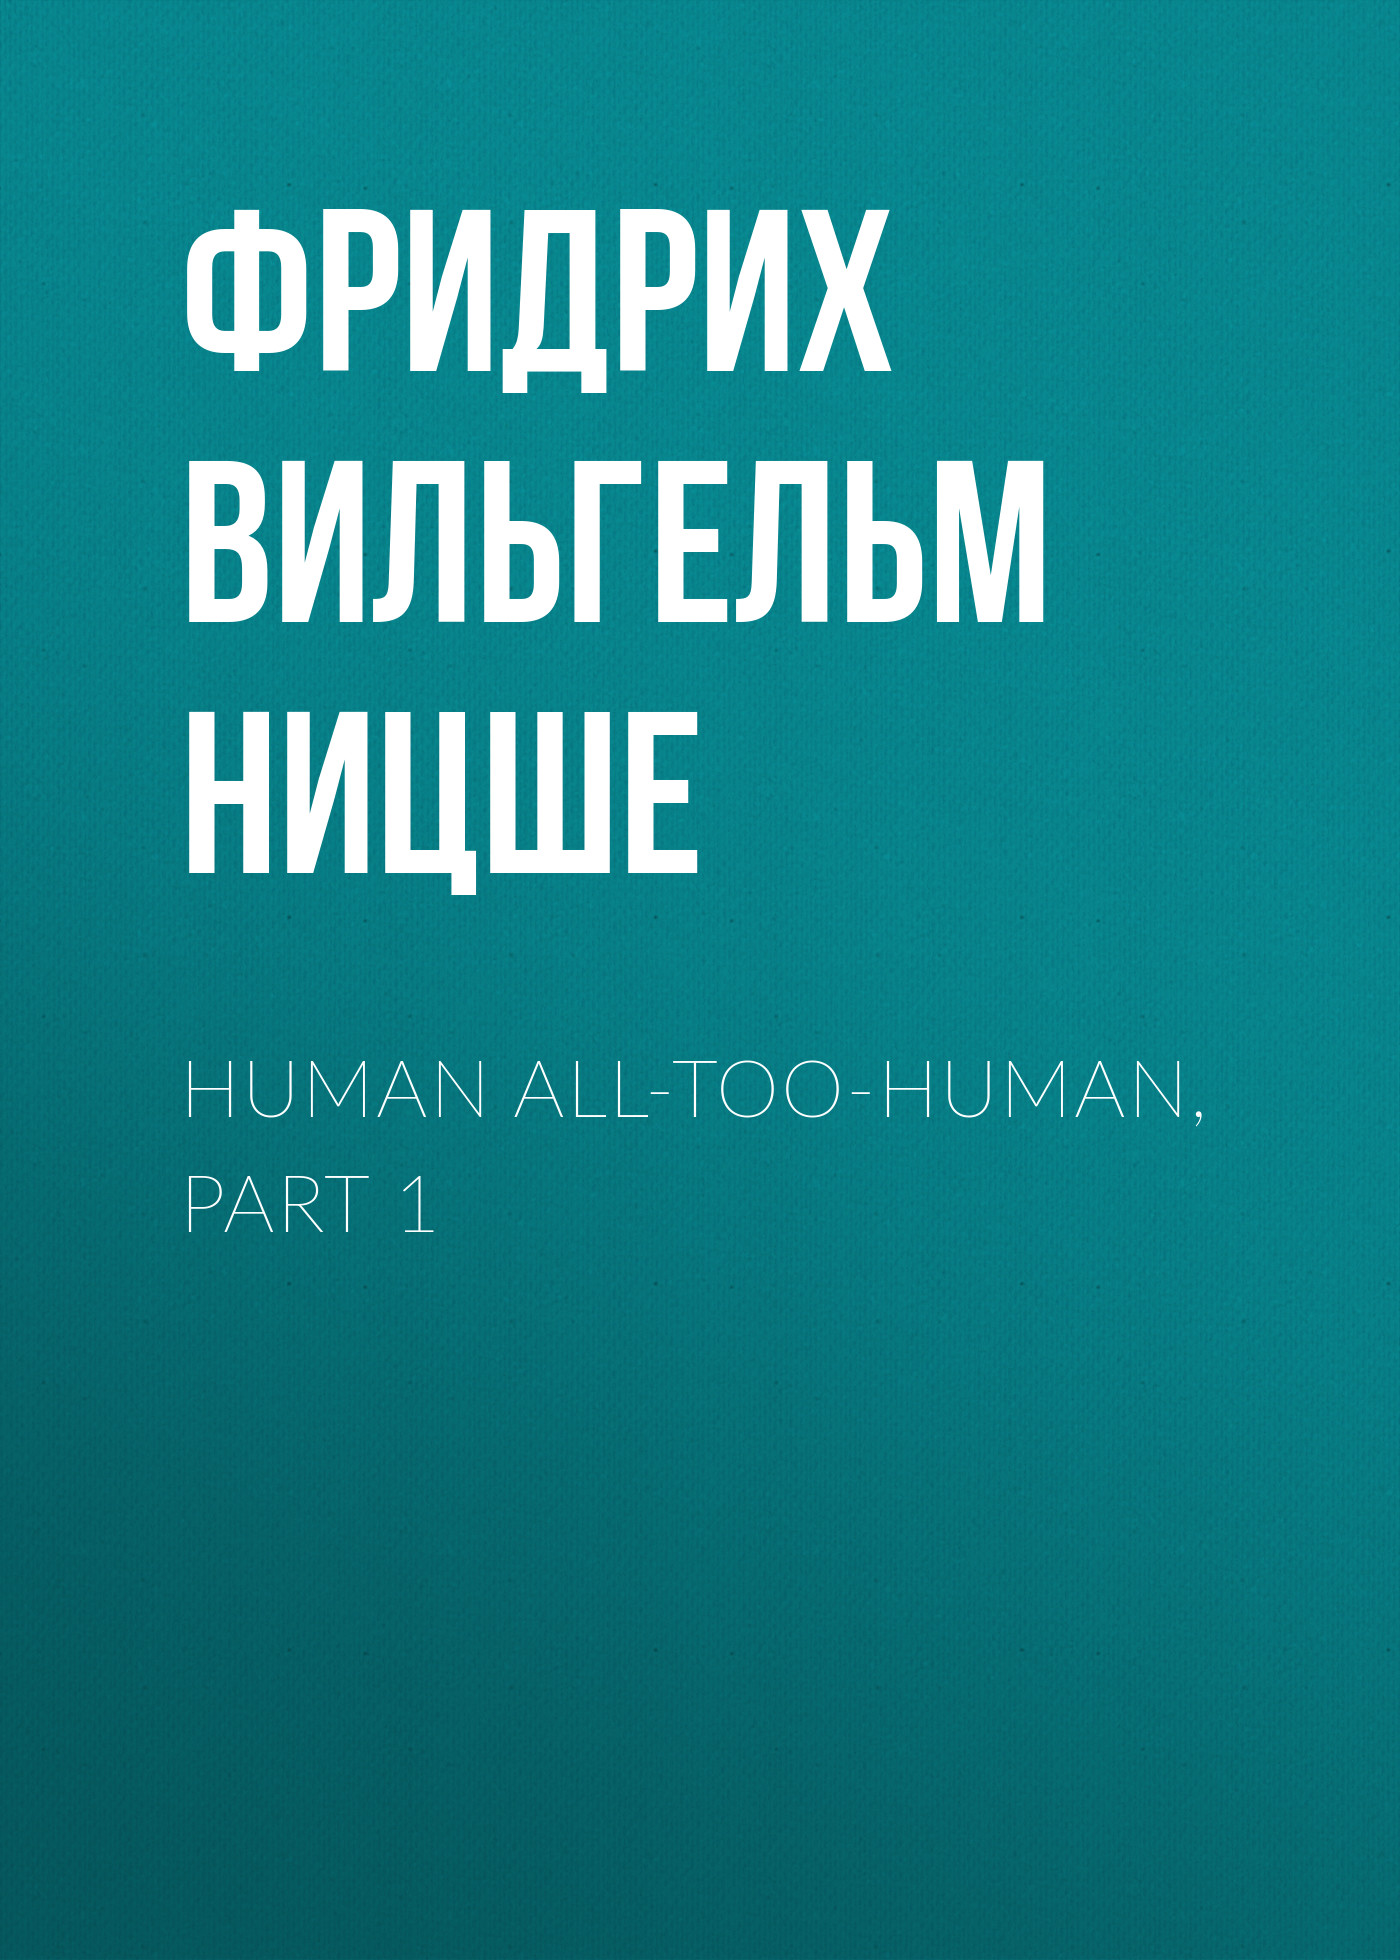 Фридрих Вильгельм Ницше Human All-Too-Human, Part 1